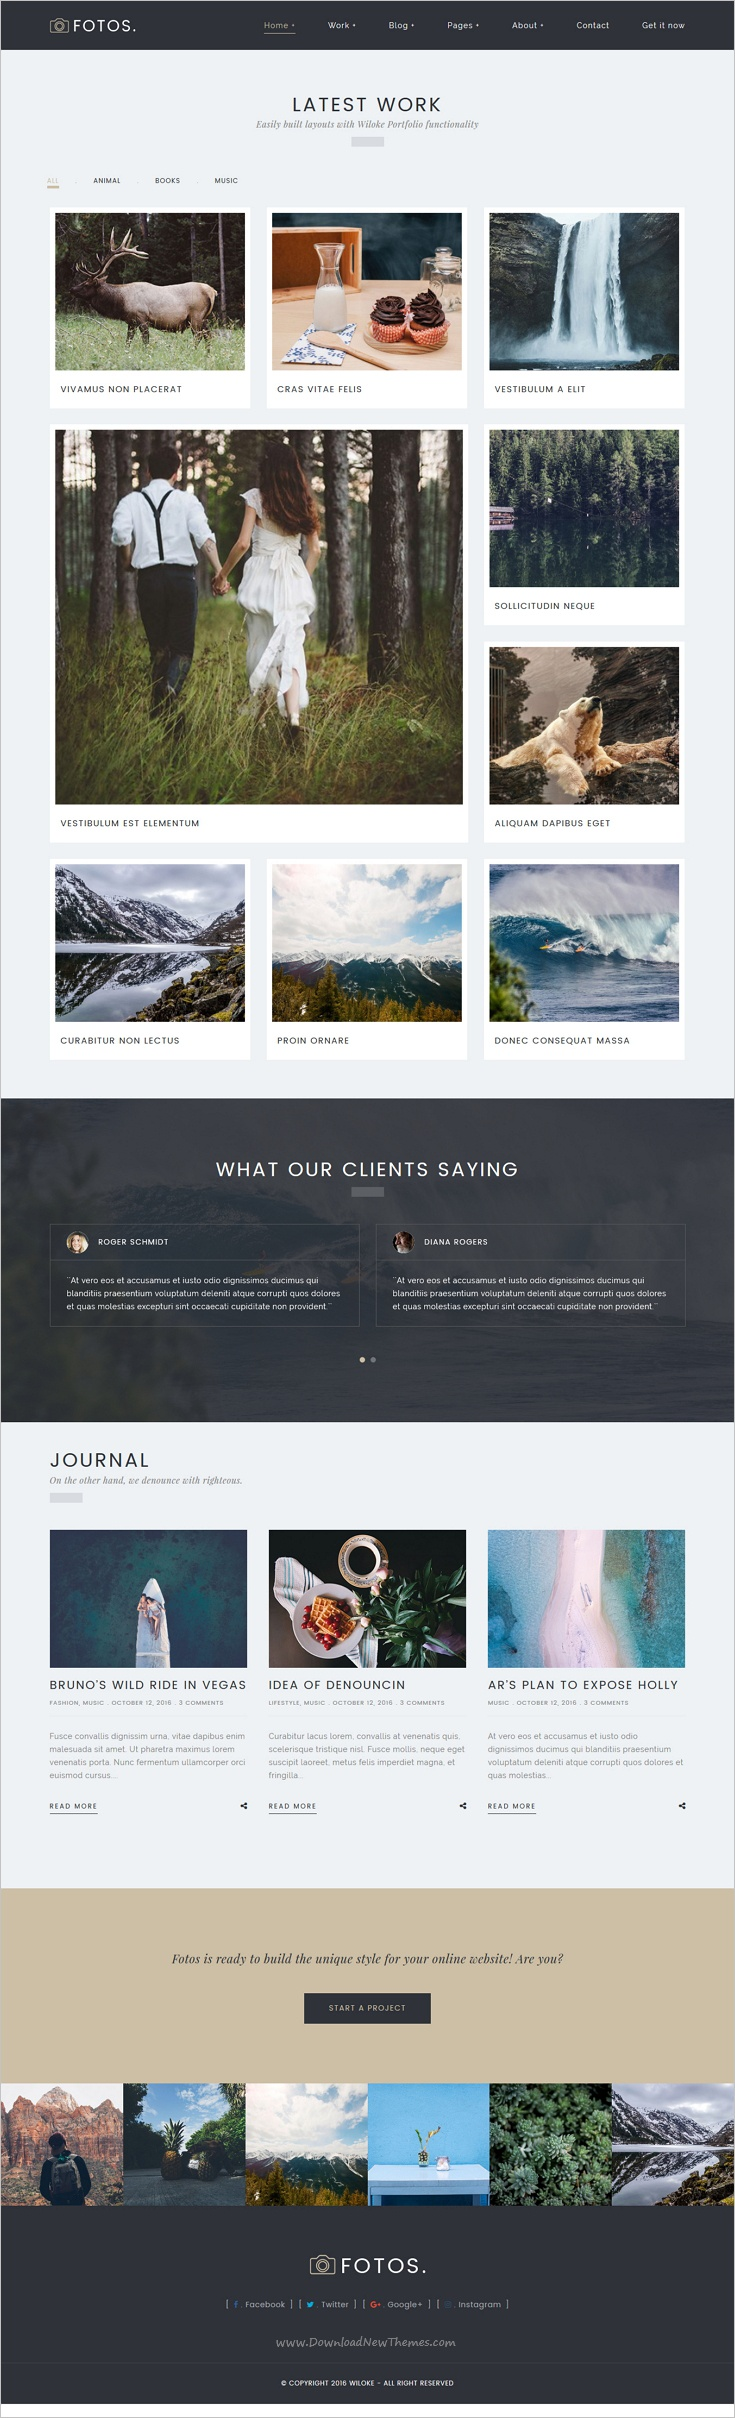 Fotos is a delicate, responsive #WordPress portfolio #theme ideal for 🎨showcasing photography, #design, and other visuals-rich work website download now➩  https://themeforest.net/item/fotos-photography-photography-wordpress/18603554?ref=Datasata